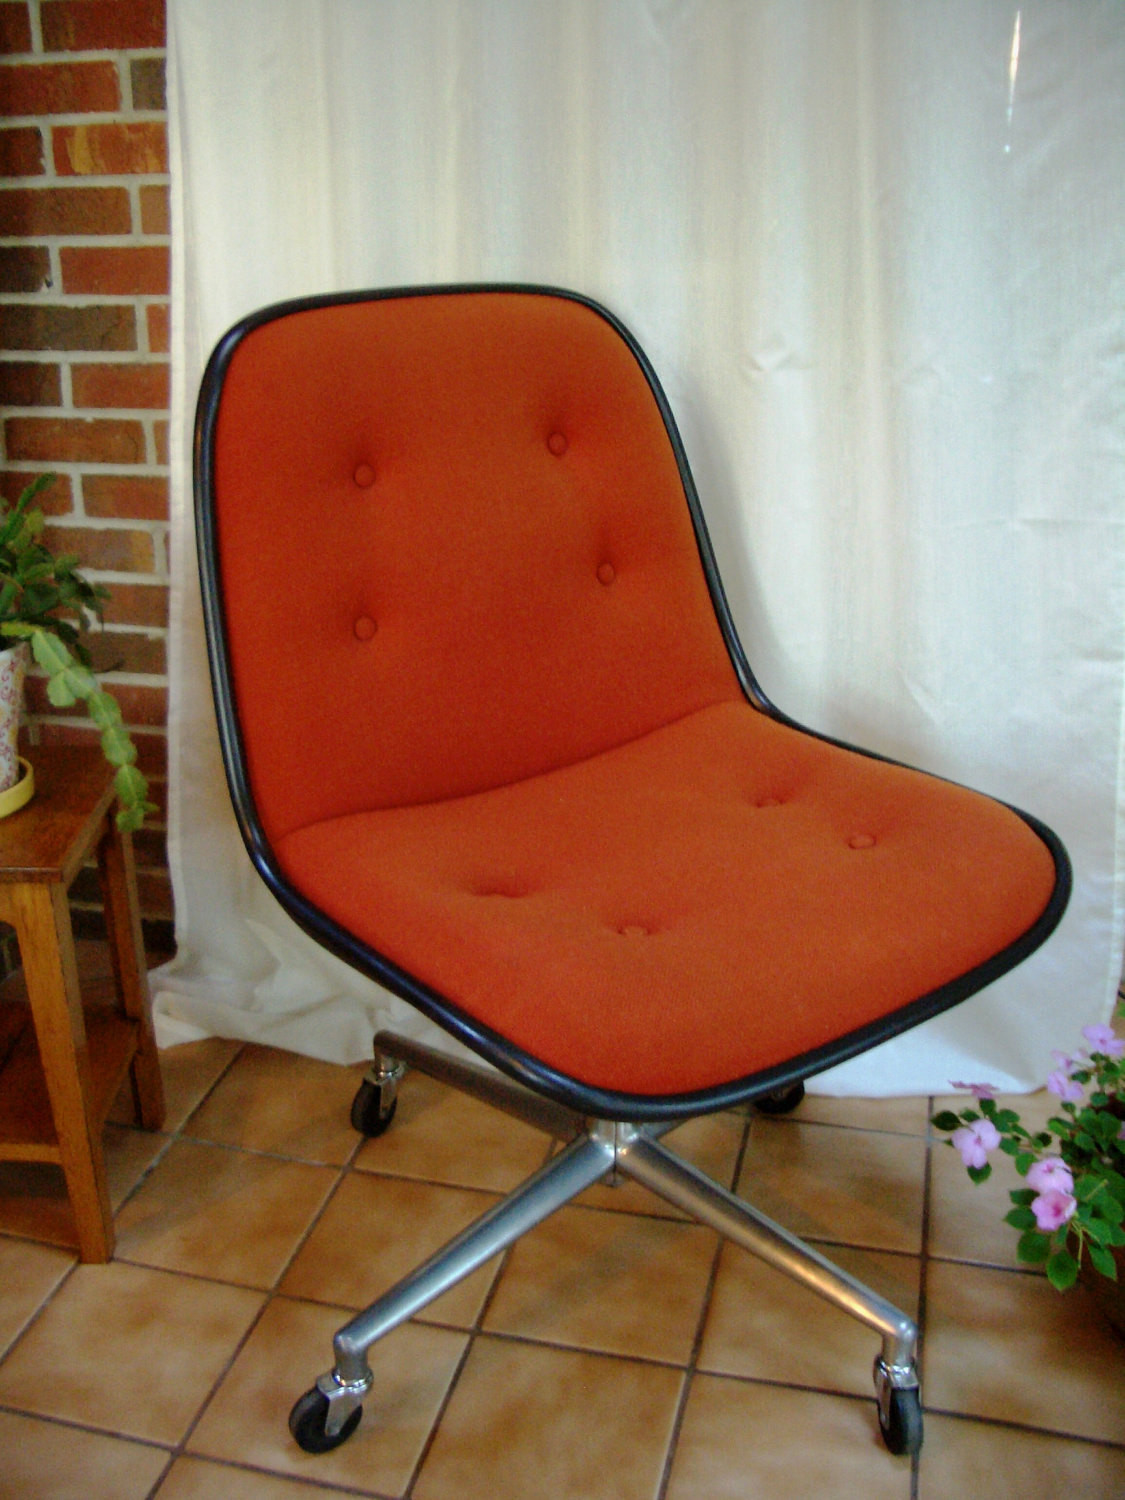 Best ideas about Mid Century Office Chair . Save or Pin Vintage fice Desk Chair Mid Century Pollock Style Treasury Now.